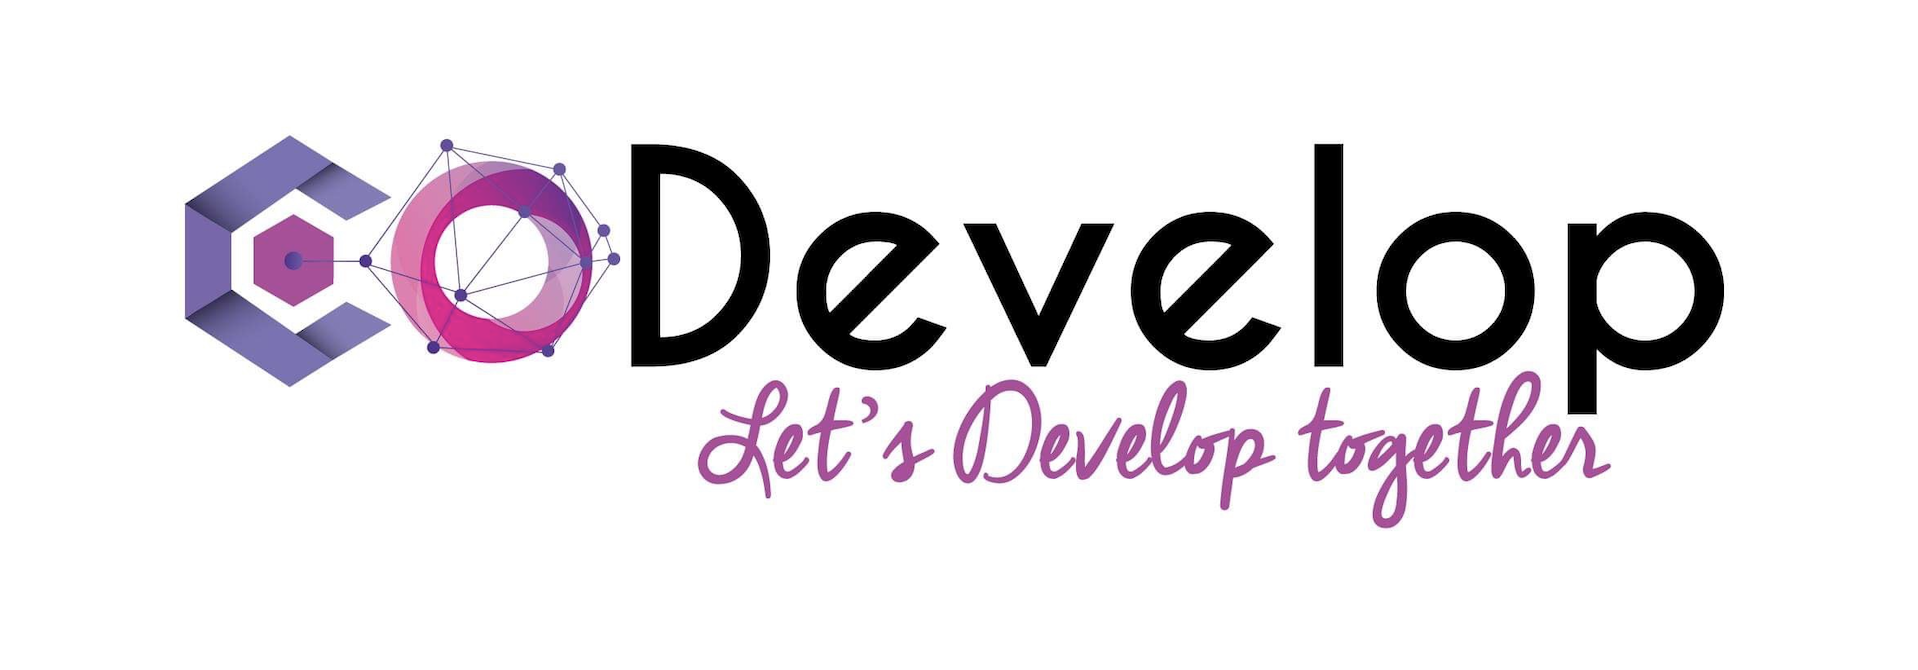 CoDevelop – Let's CoDevelop Together